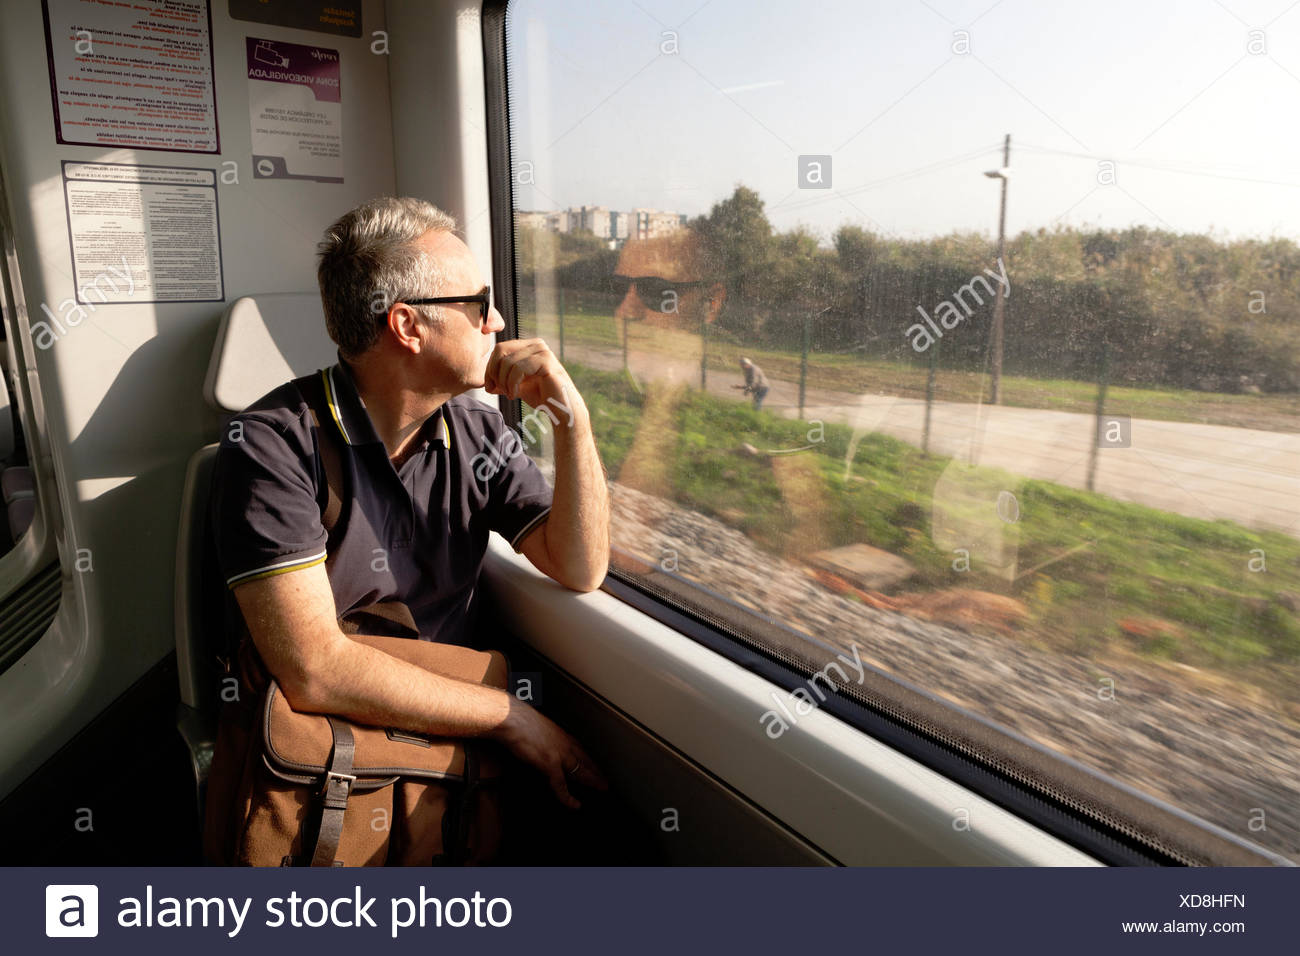 A man travelling on a train looking out the window Stock Photo - Alamy